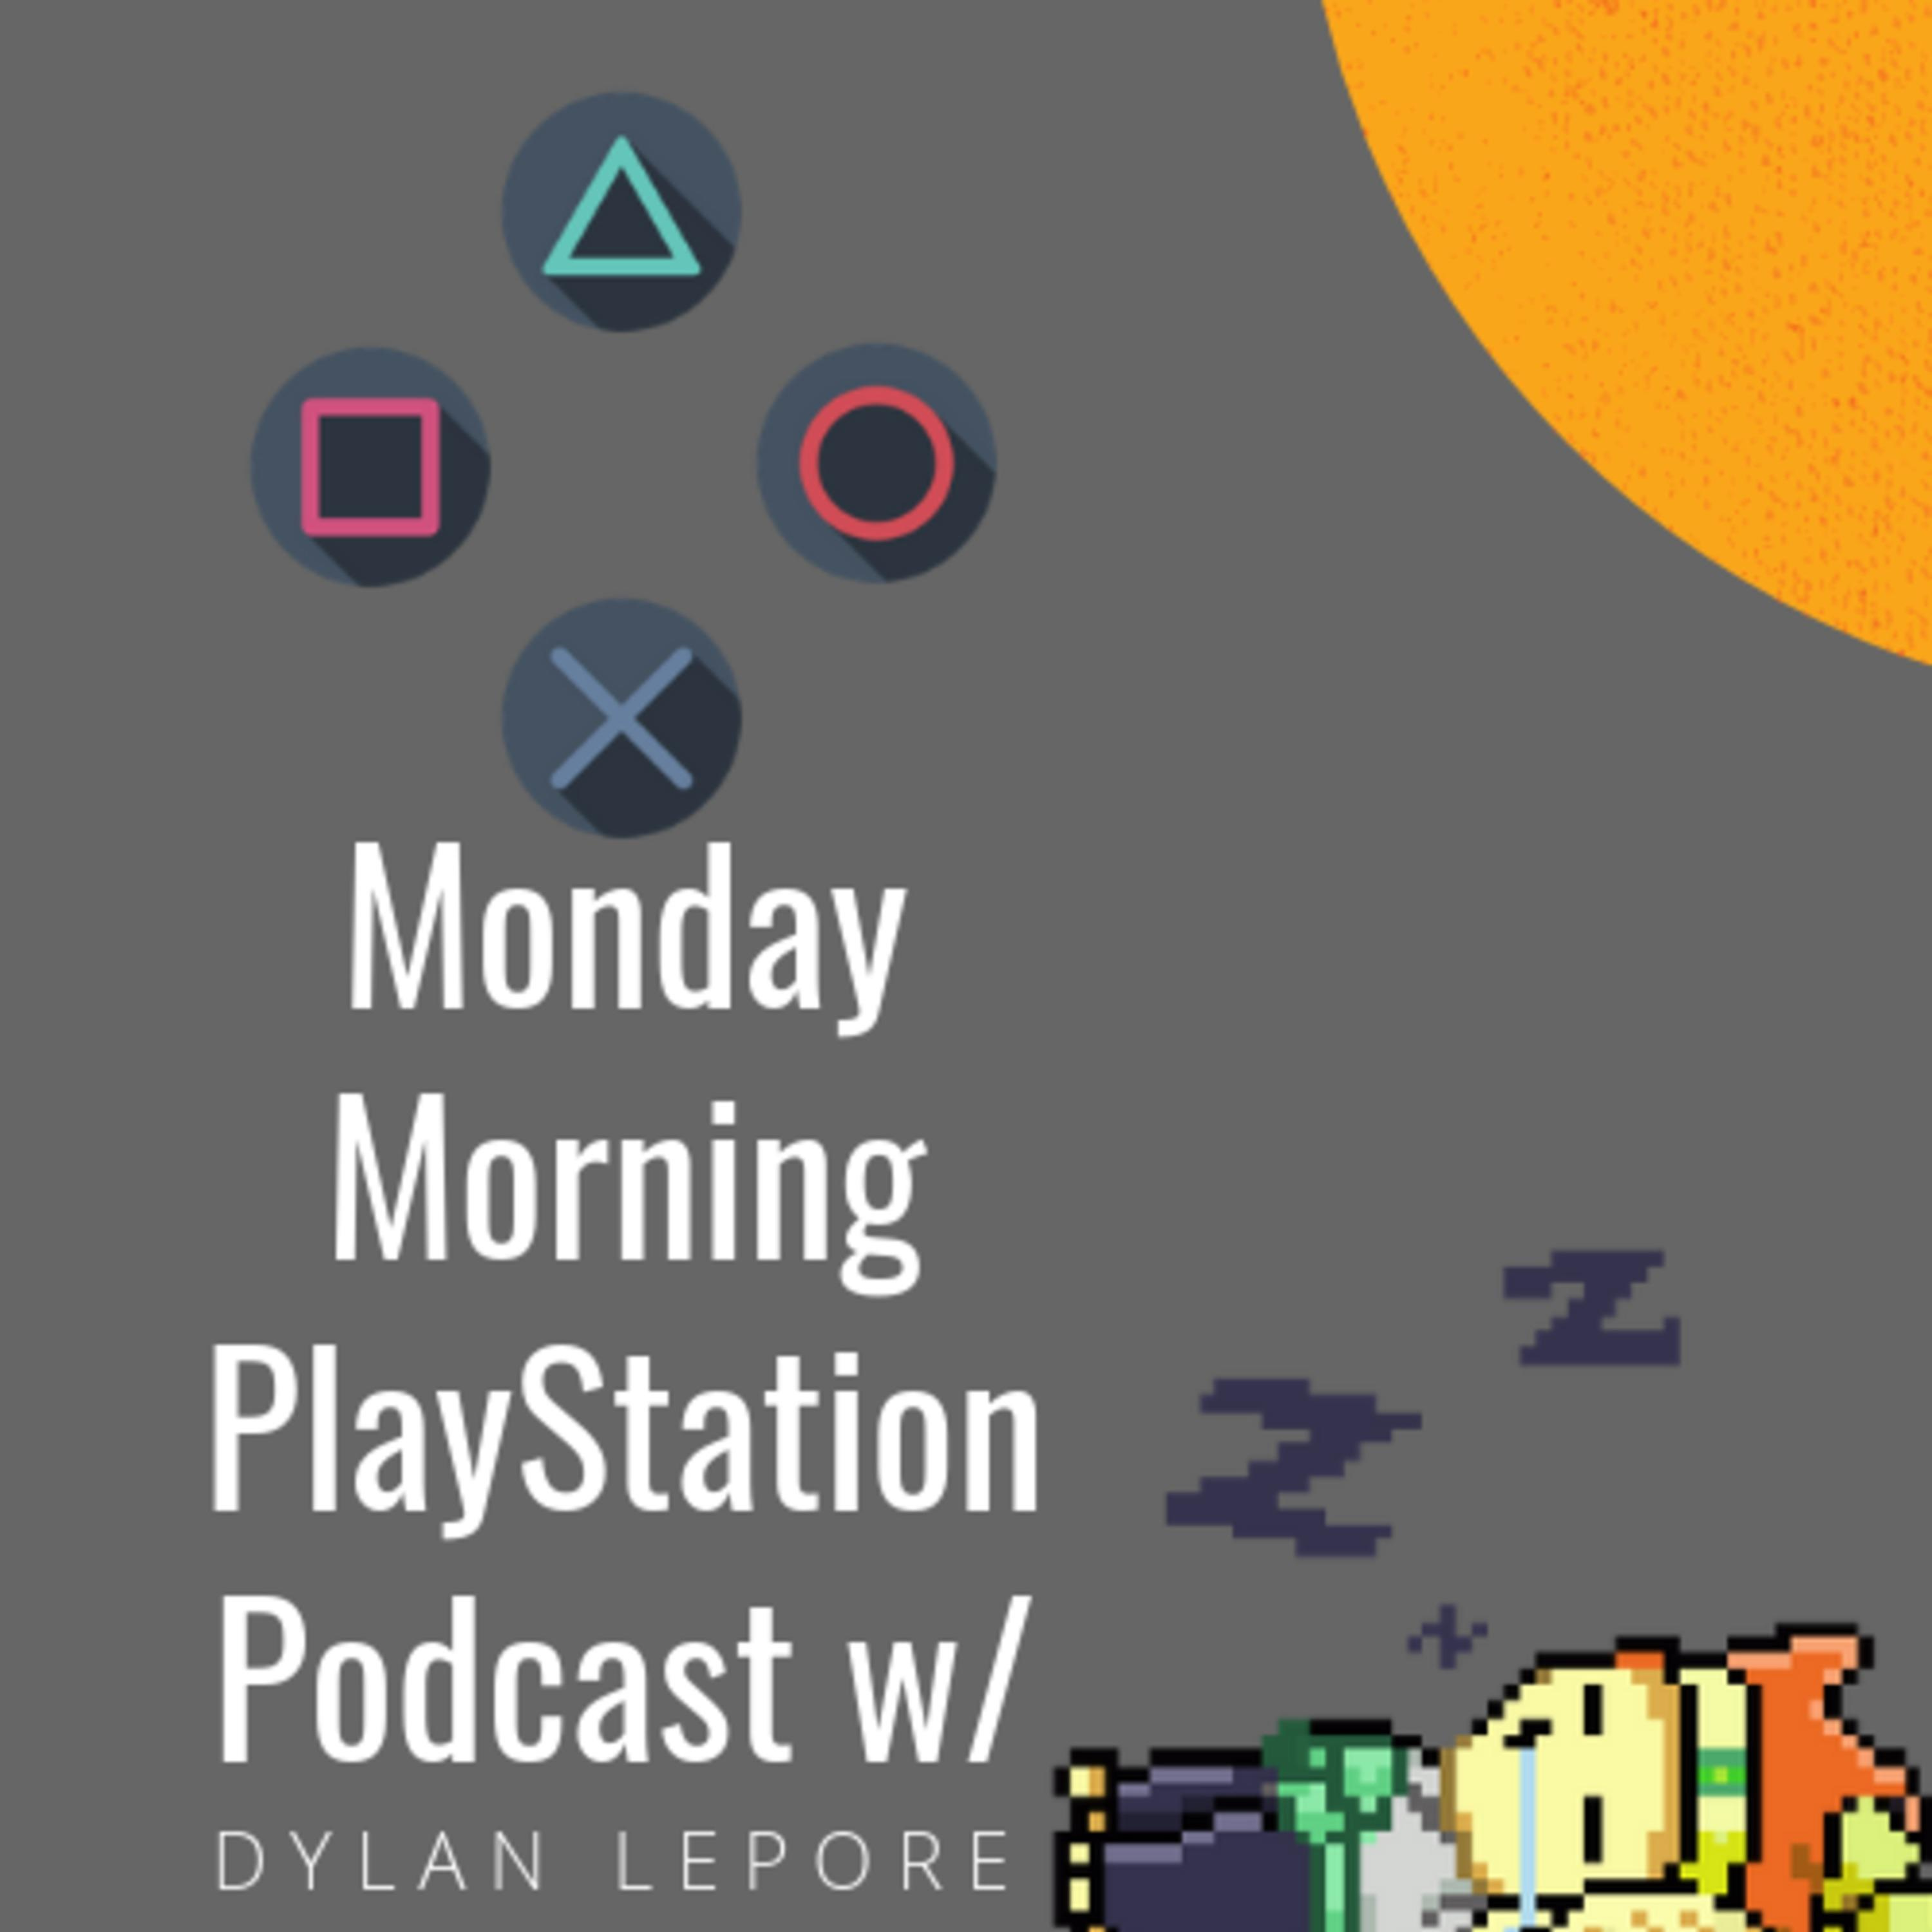 KEANU REEVES: YOU'RE BREATHTAKING AT E3 2019 | the Monday Morning PlayStation Podcast W/ Dylan Lepore Ep. 20